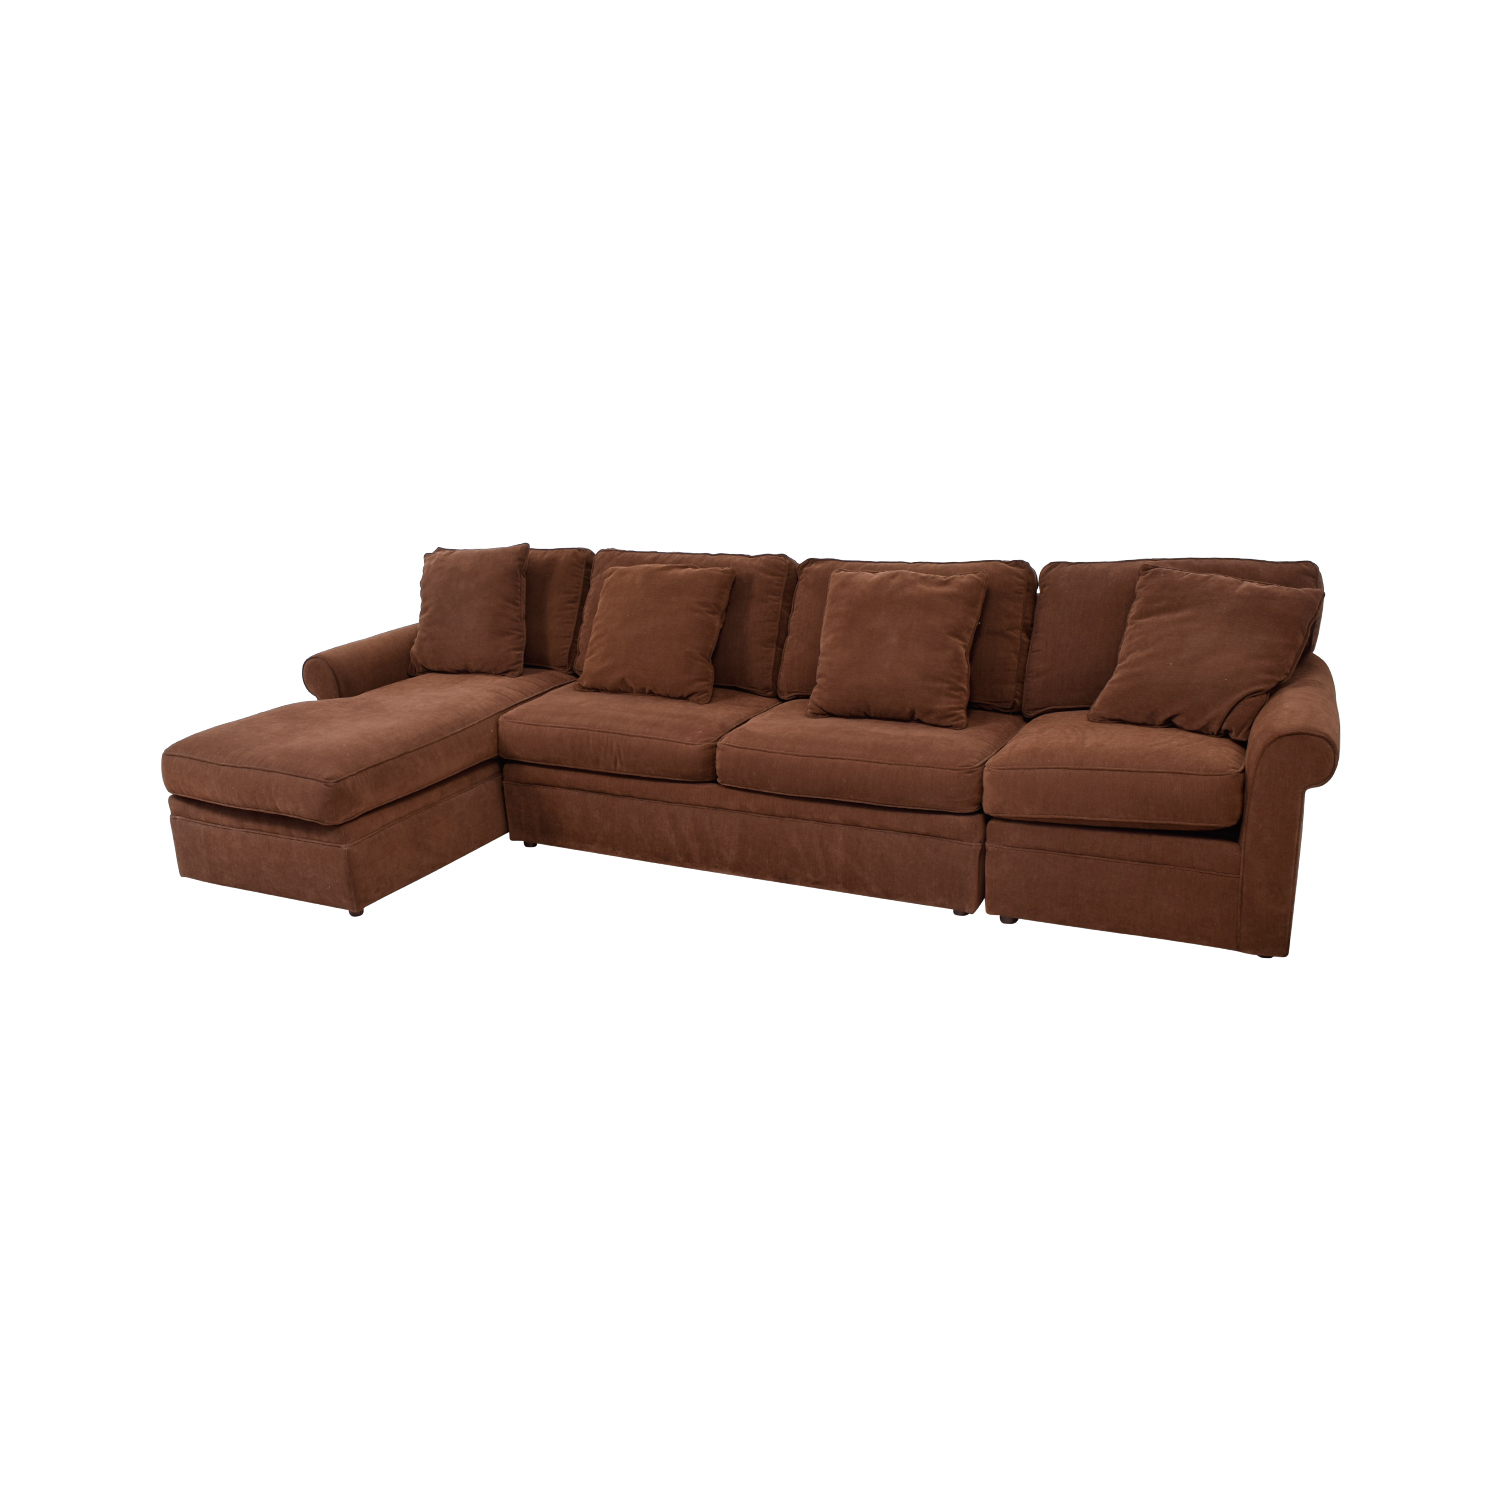 rowe masquerade sectional sofa tylosand covers review home co